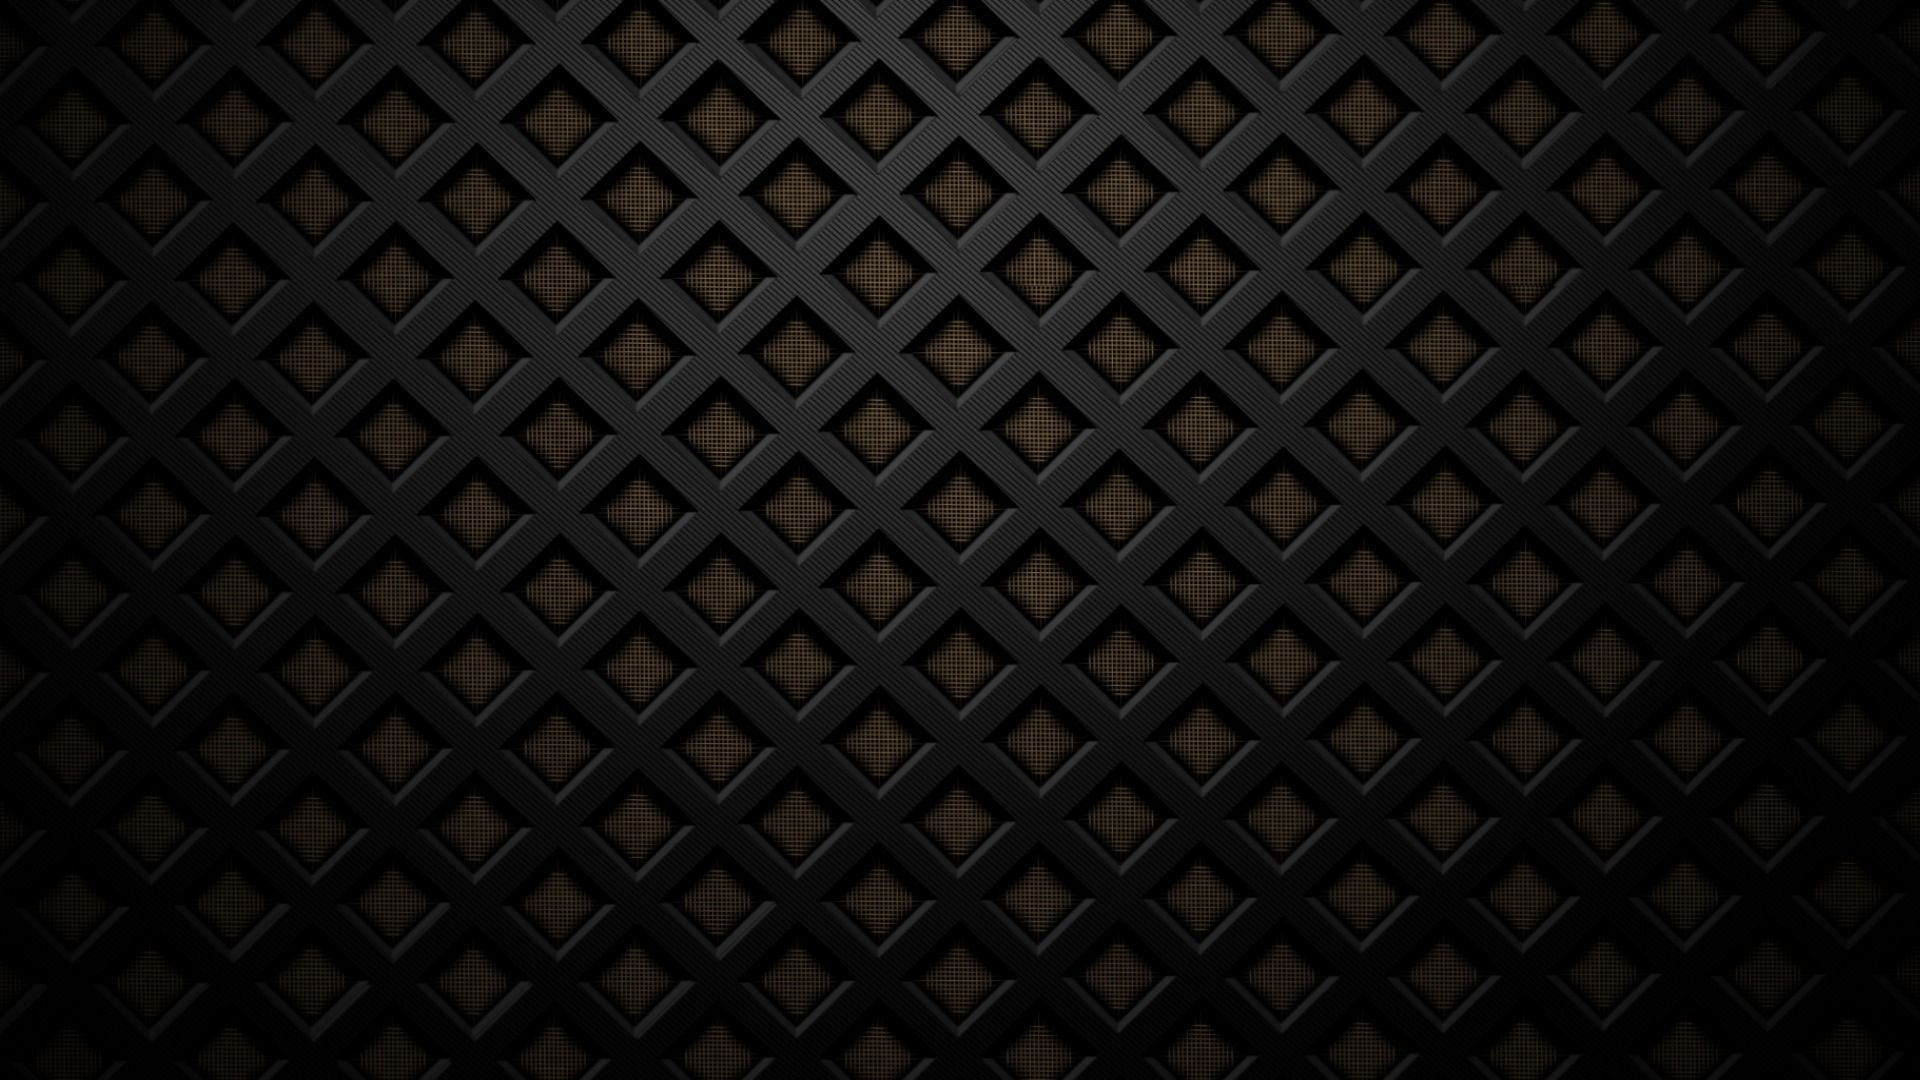 Black Texture Wallpaper Background HD 1020 HD Wallpaper Site